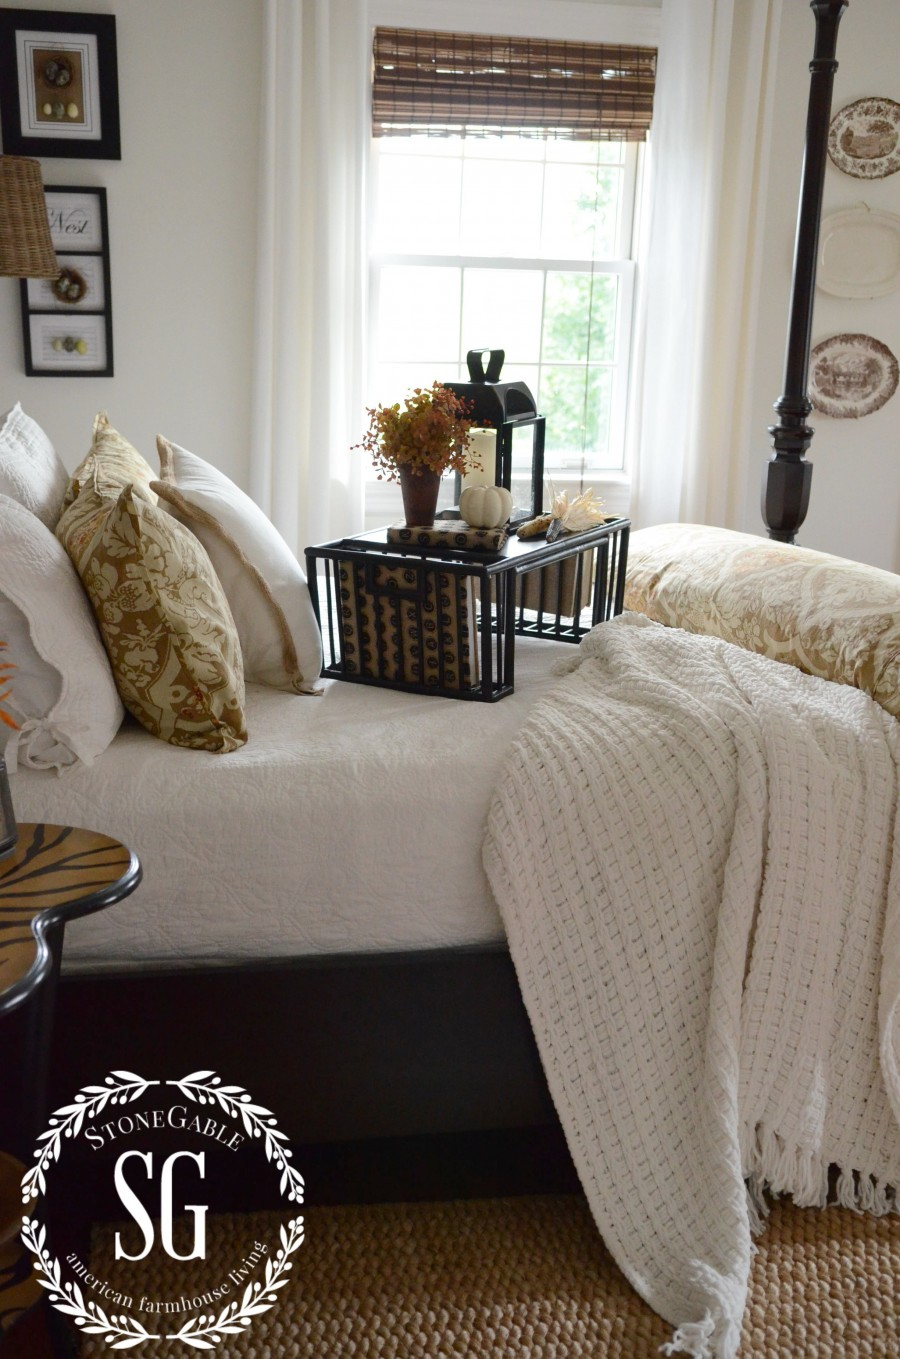 HOW TO KNOW YOUR DECOR STYLE-traditional style is not old fashioned-it